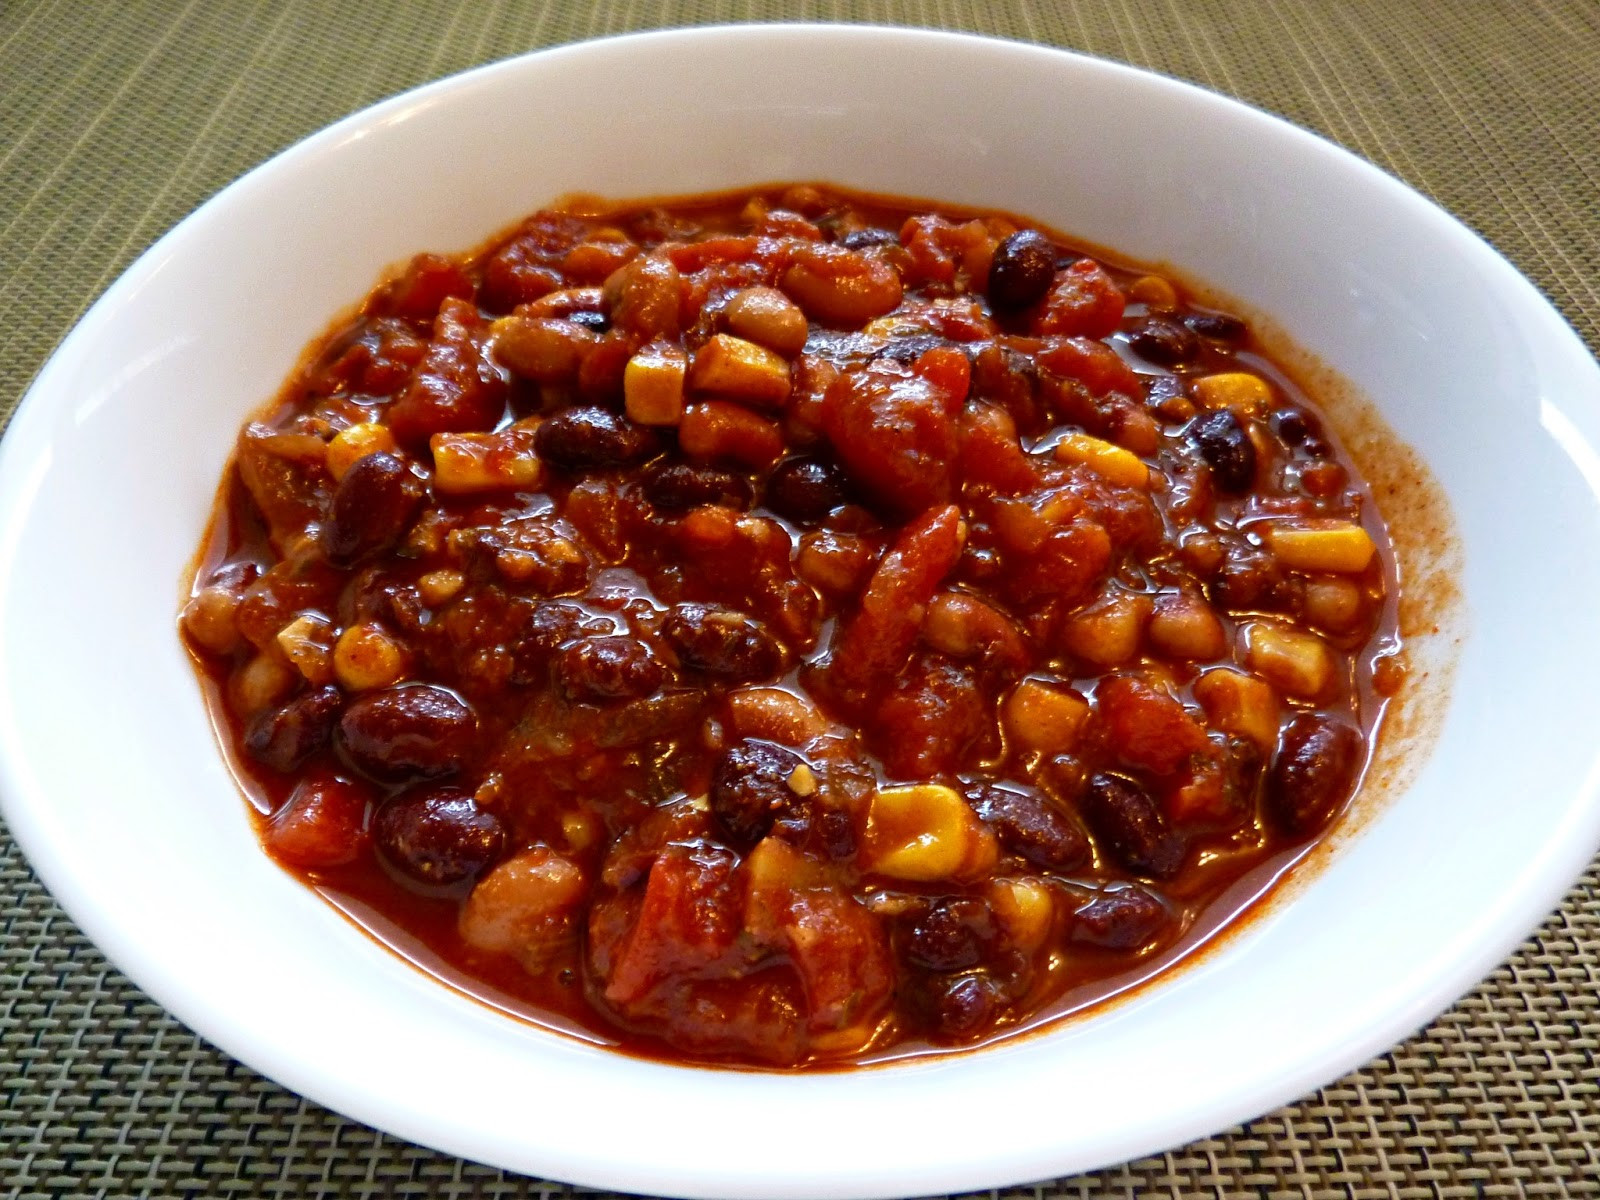 Best Vegetarian Chili  Best Ve arian Chili If Not Still Really Yummy As the